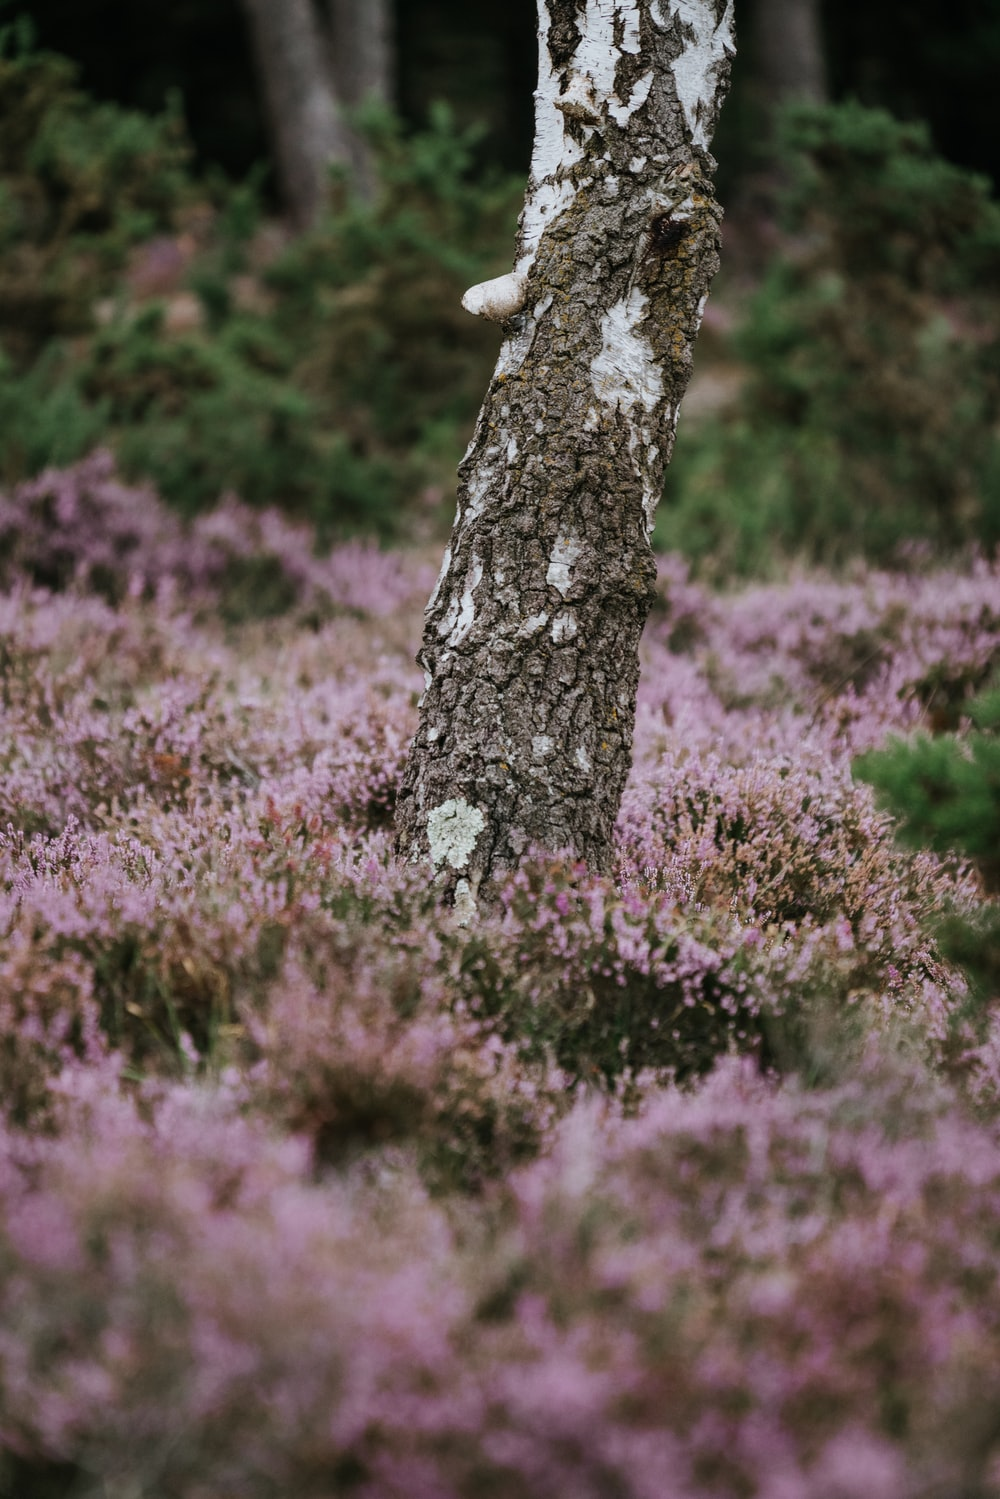 close-up photo of gray and white tree trunk surrounded with flowers